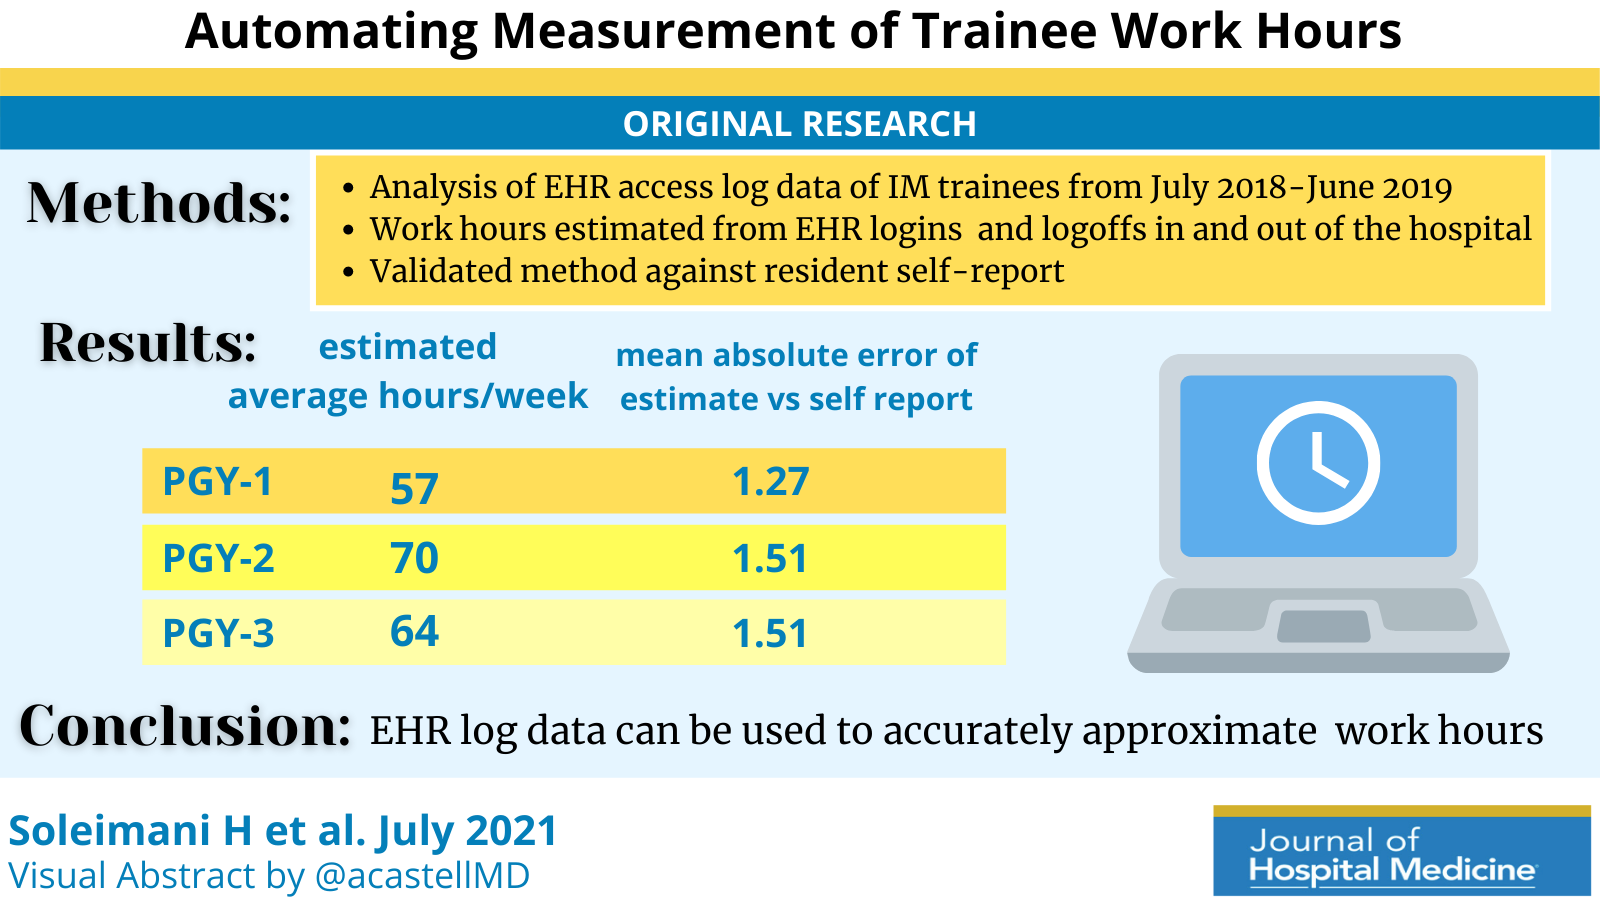 Automating Measurement of Trainee Work Hours